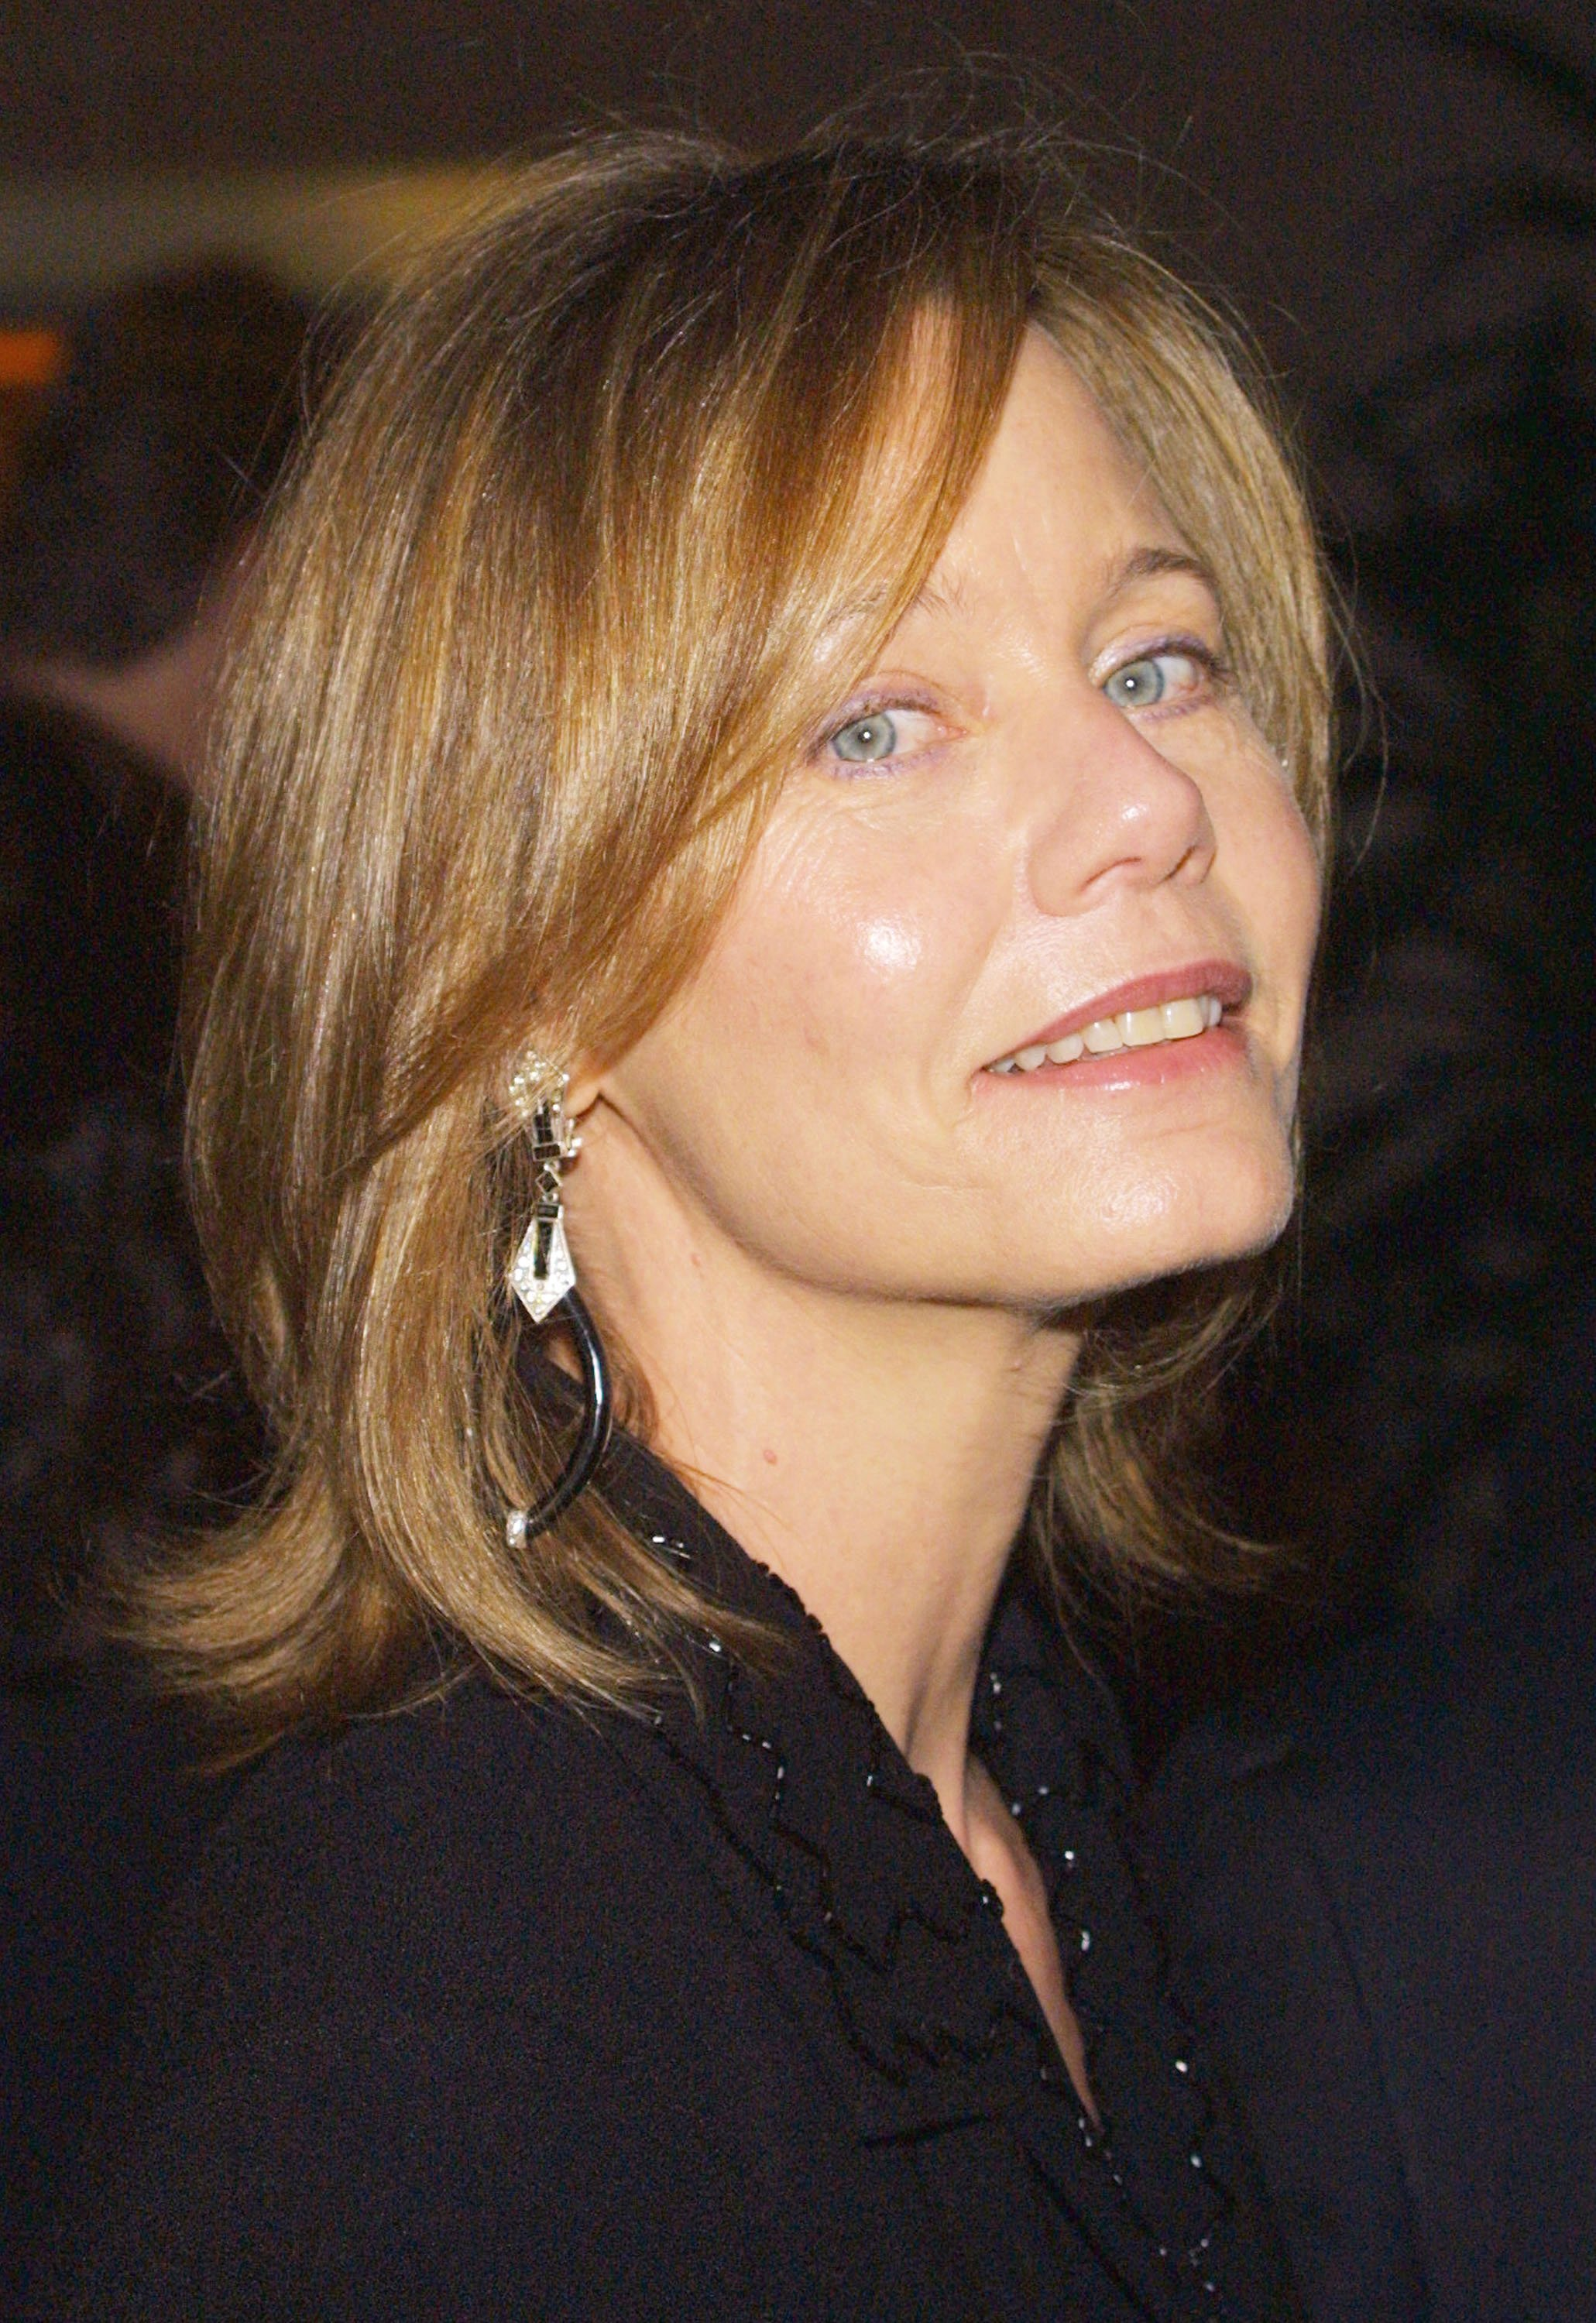 Image Credit: Getty Images / Actress Susan Dey poses for a photo.